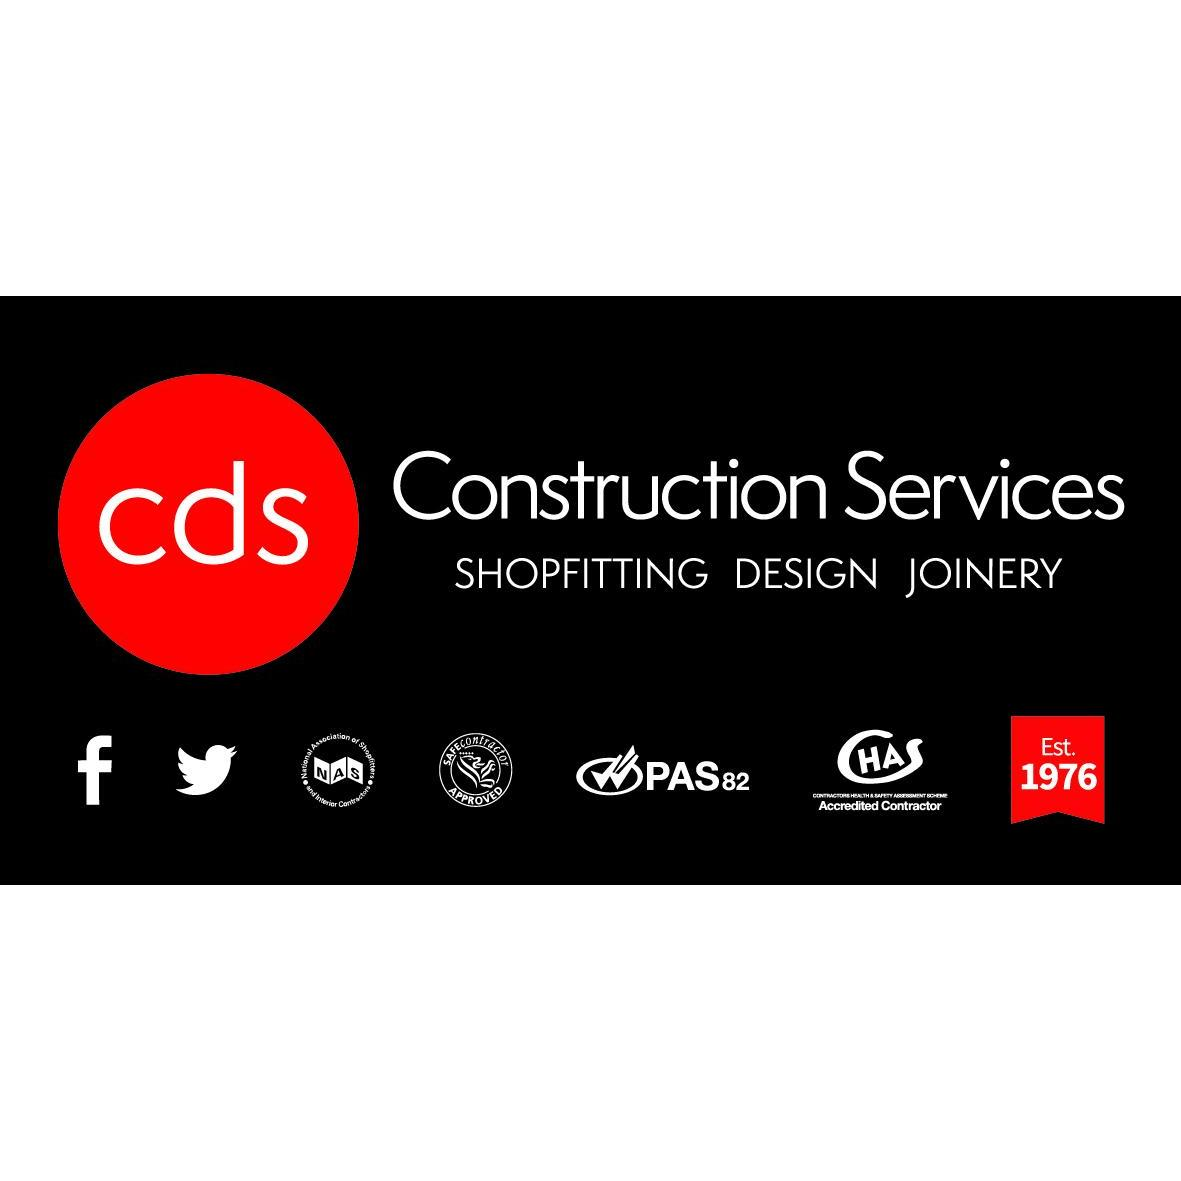 C D S Construction Services Ltd